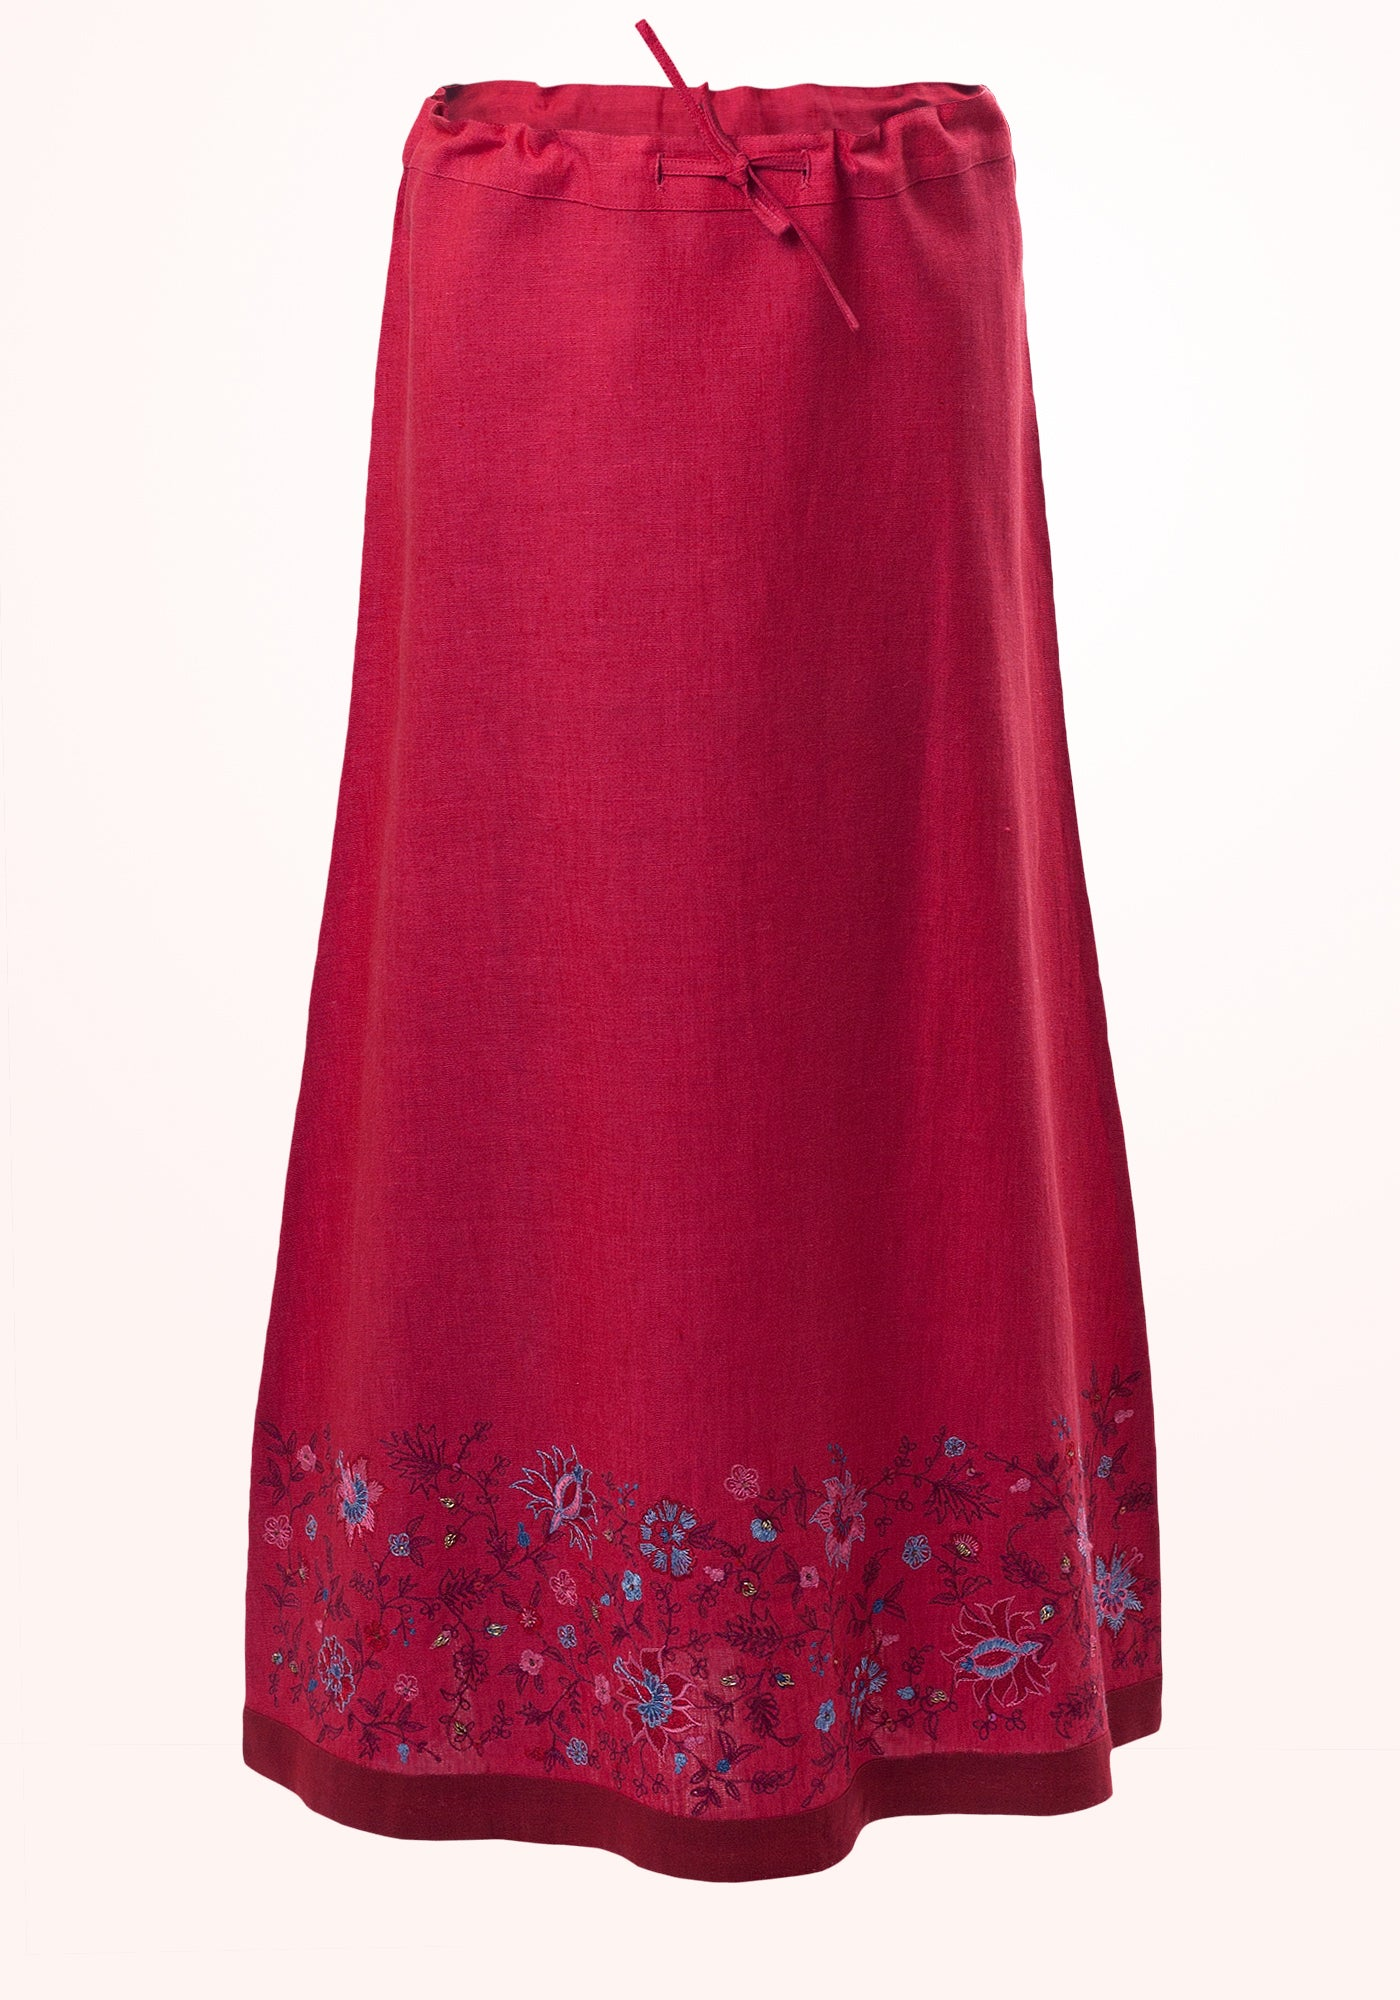 Raspberry Sorbet Girls Skirt in Fuchsia Linen - MINC ecofashion